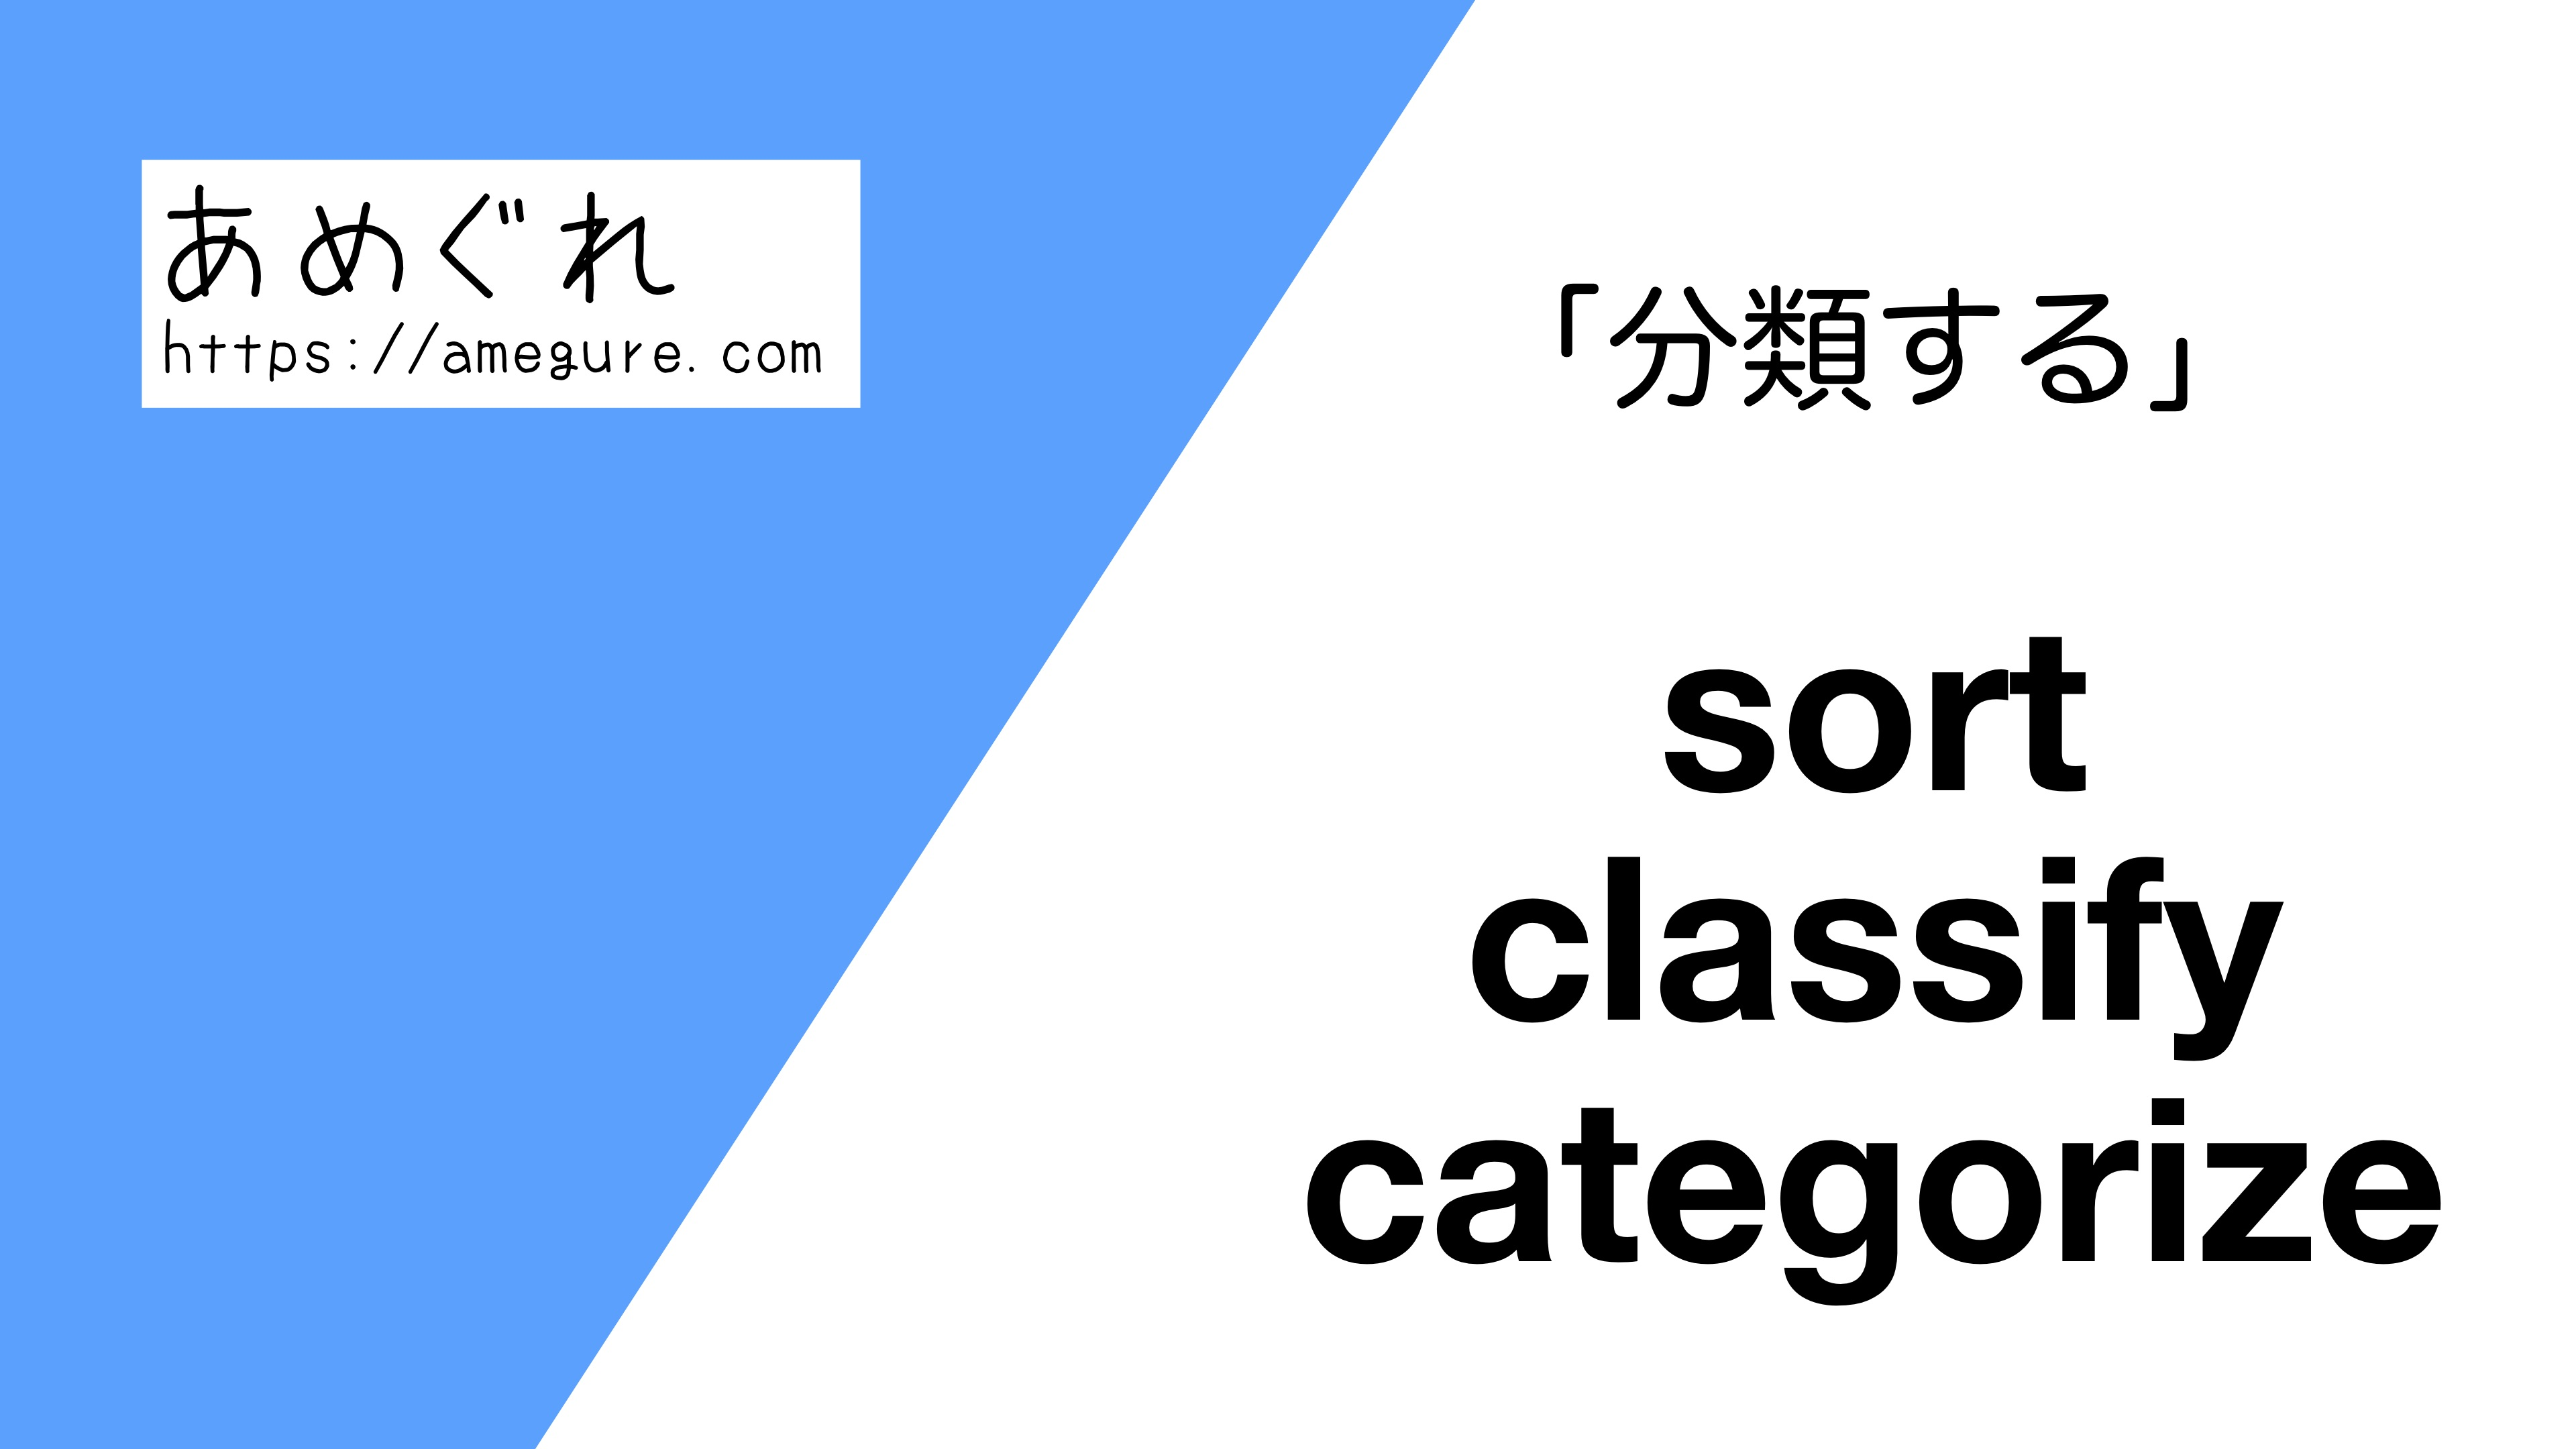 sort-classify-categorize違い